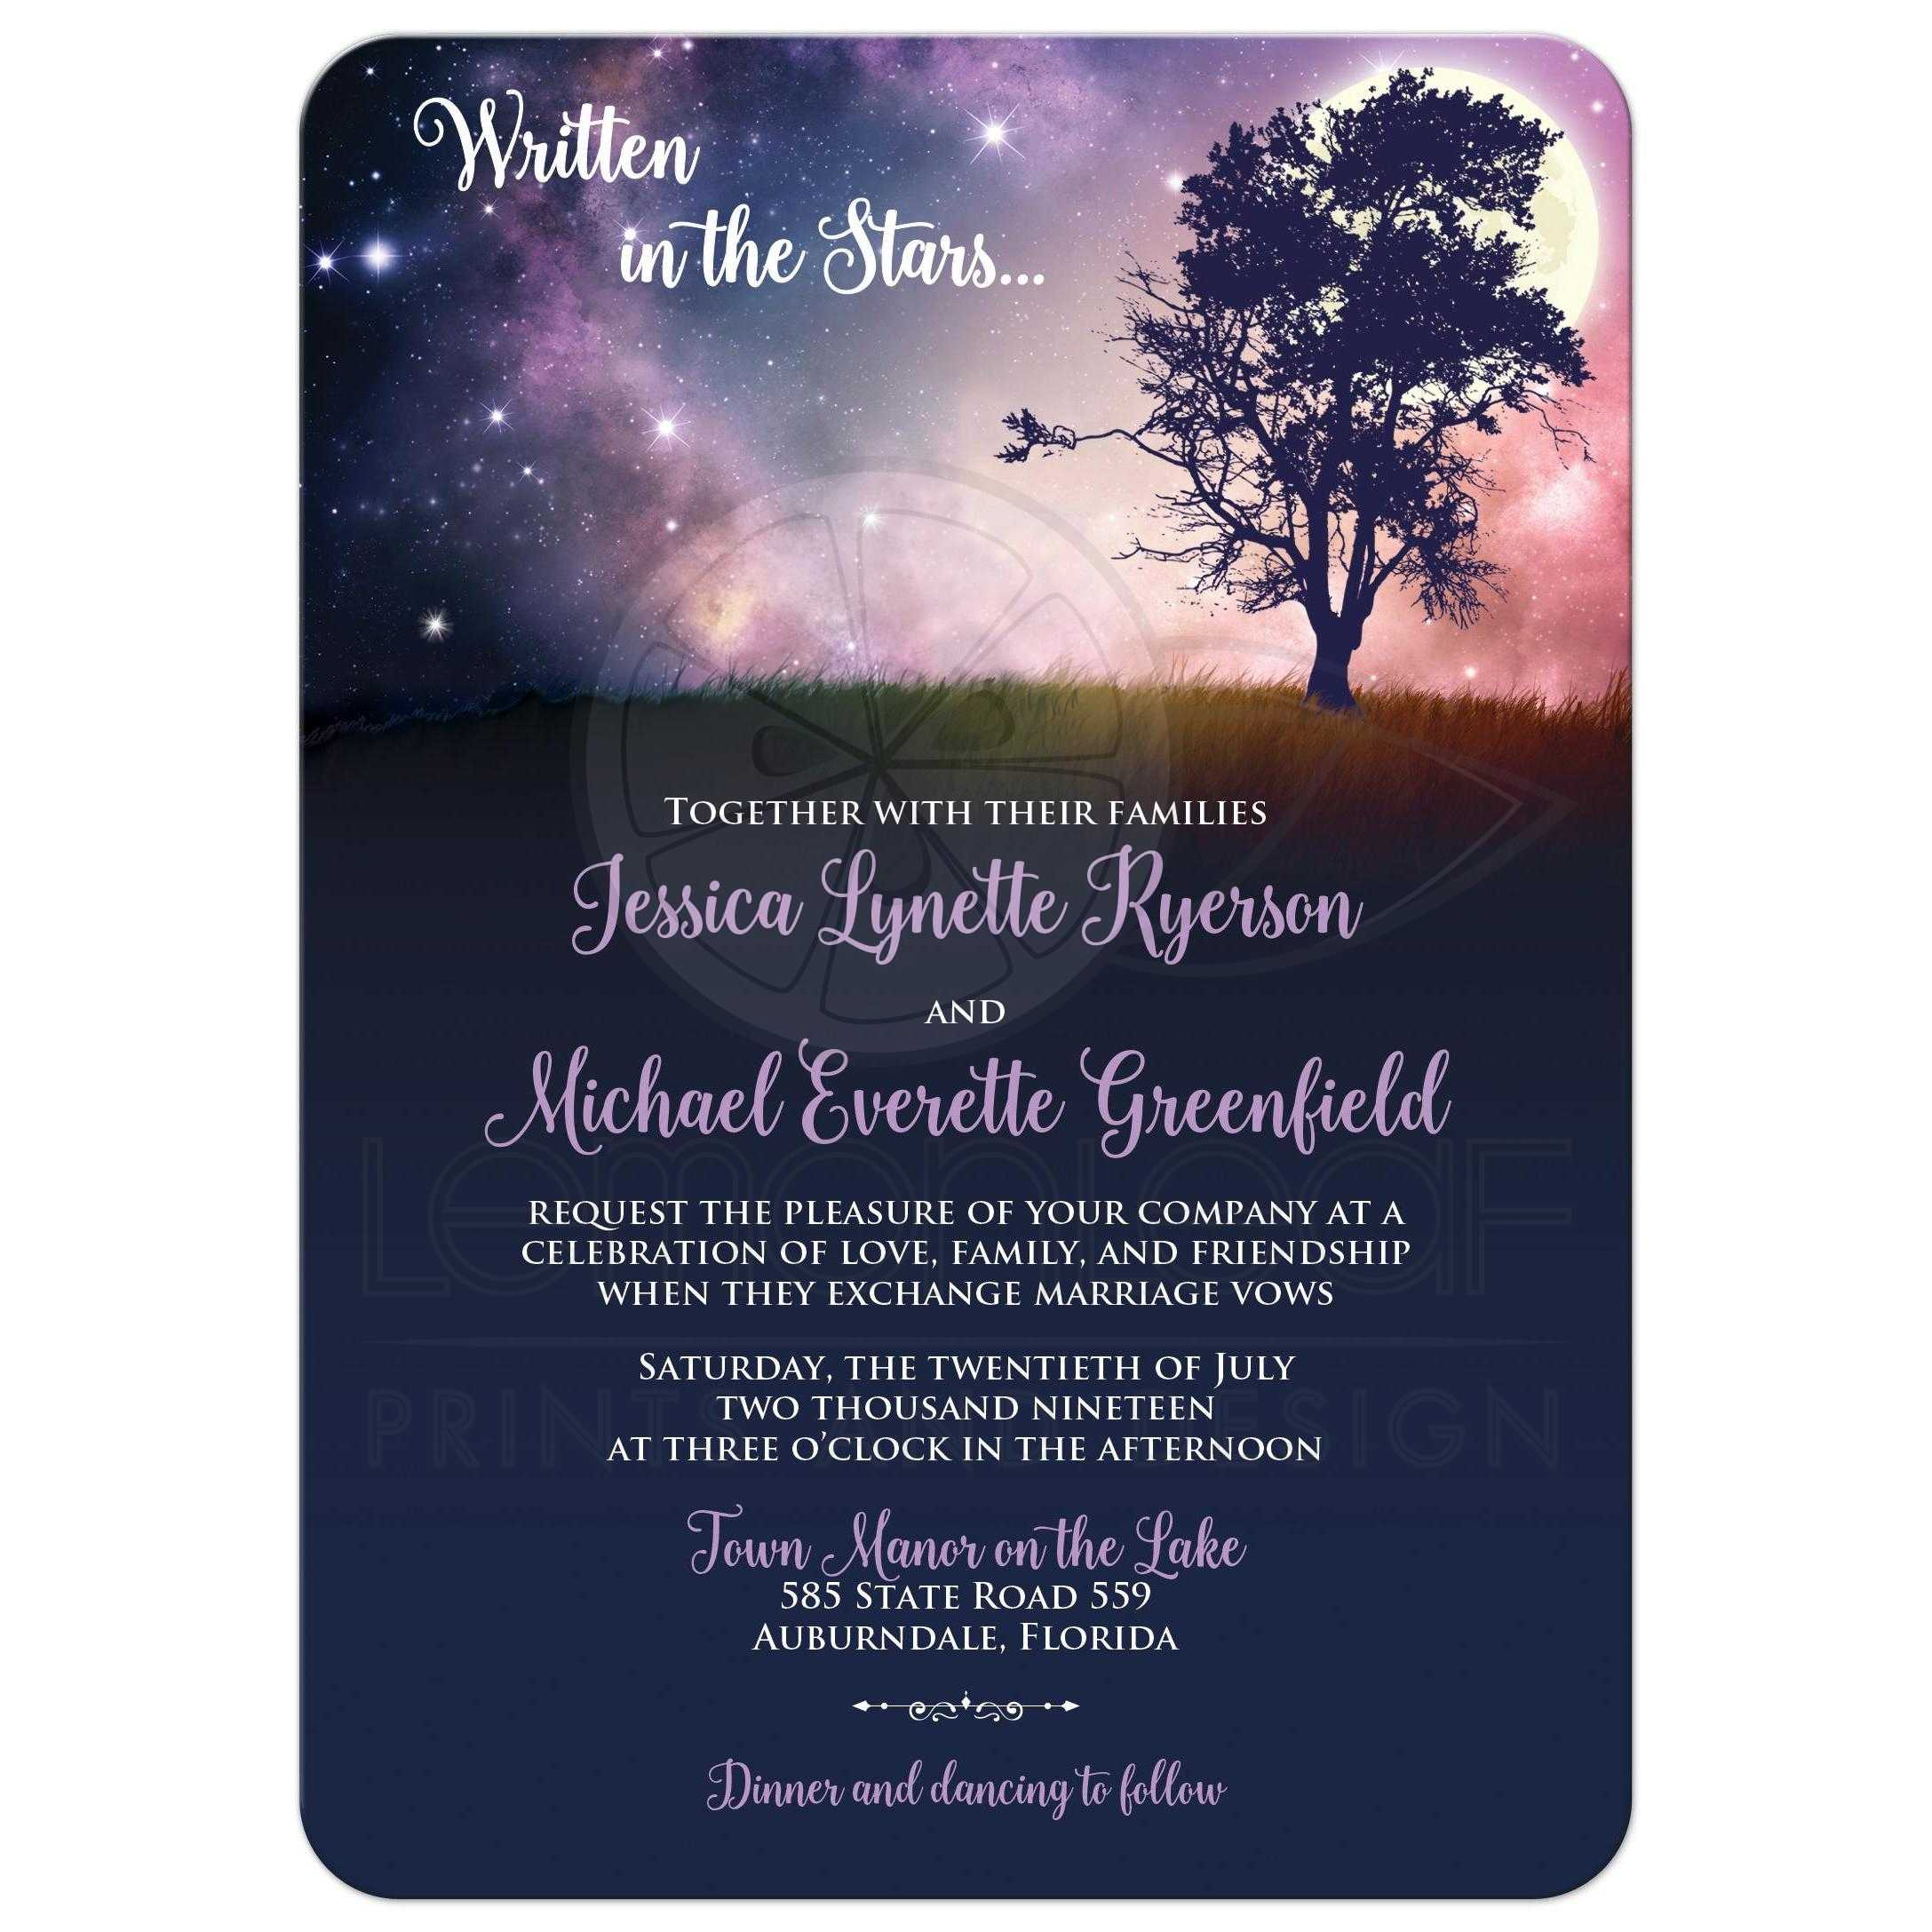 Written In The Stars Wedding Invitation With Full Moon And